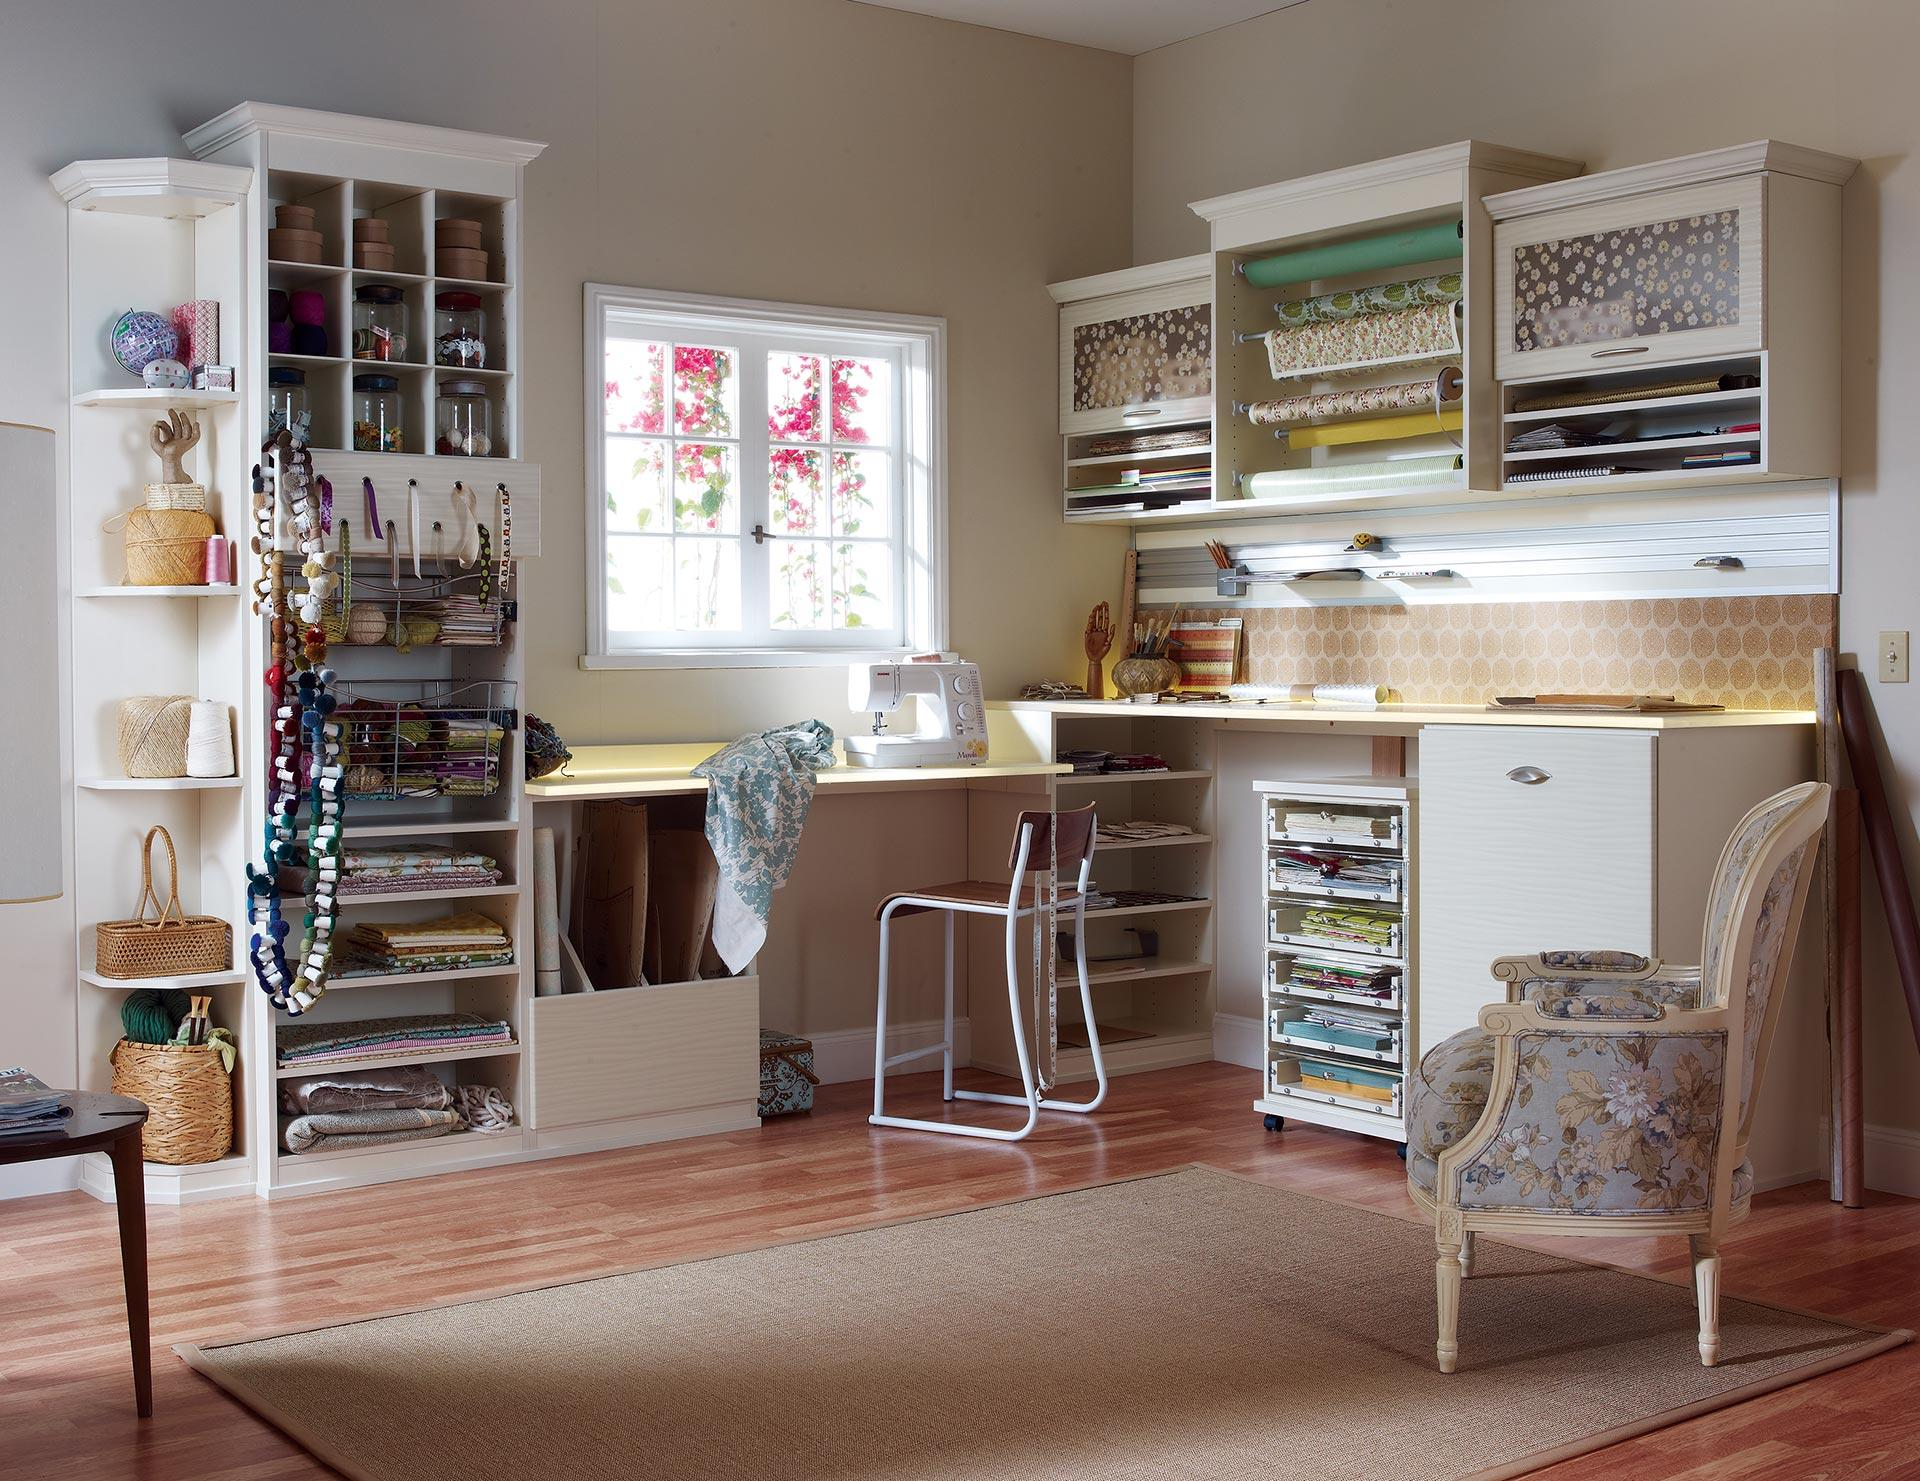 Incroyable SCRAPBOOKERS CRAFT ROOM